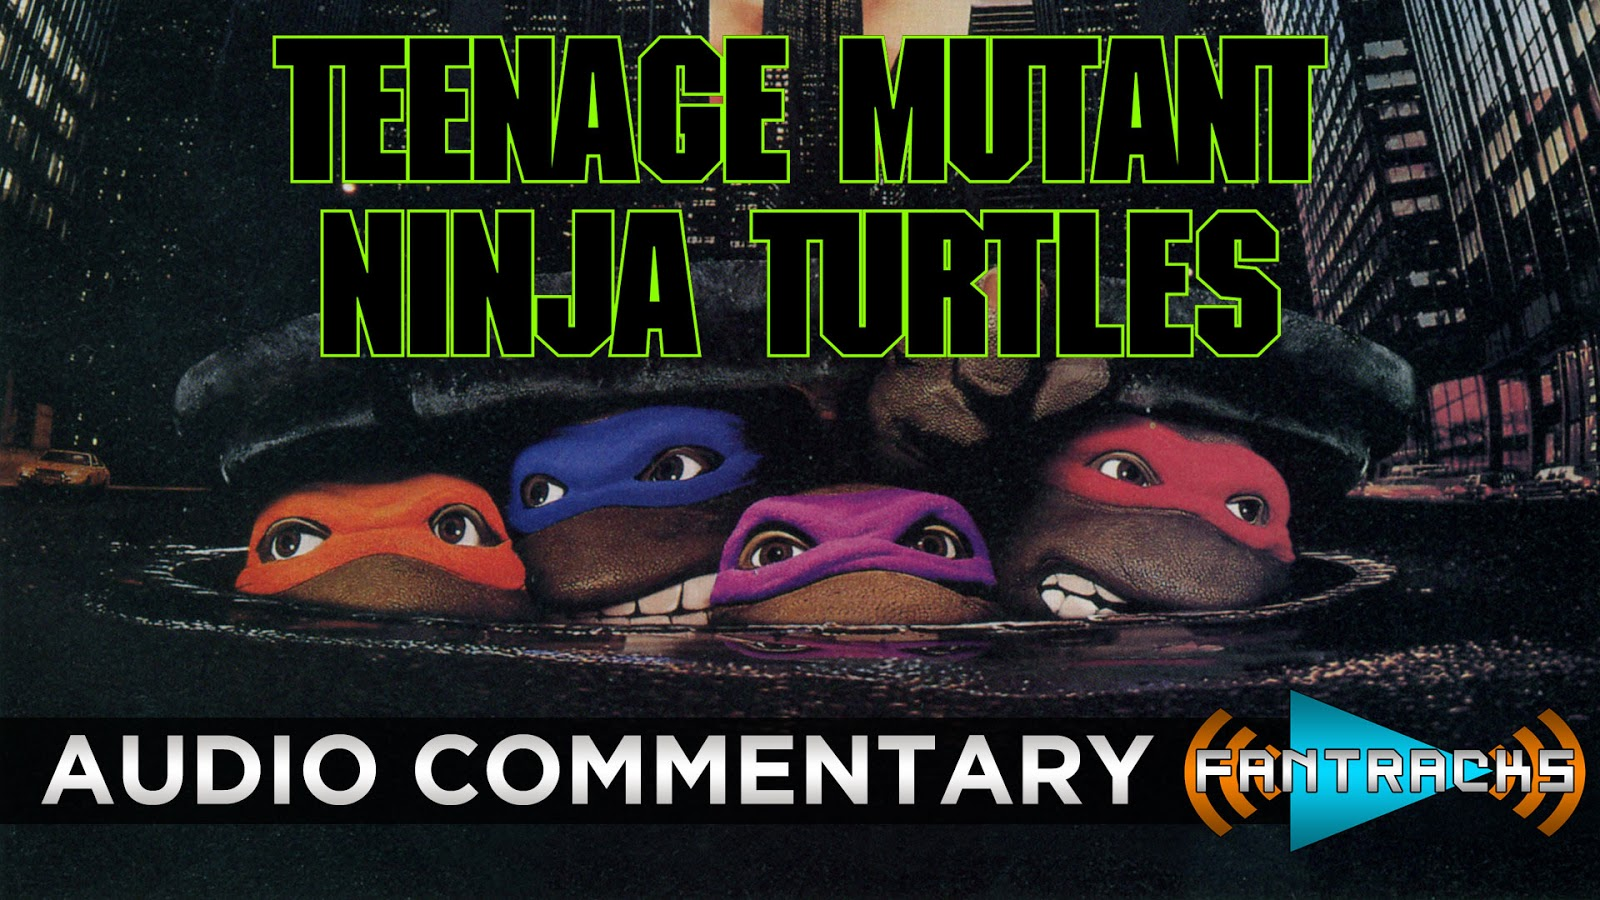 FanTracks Teenage Mutant Ninja Turtles audio commentary